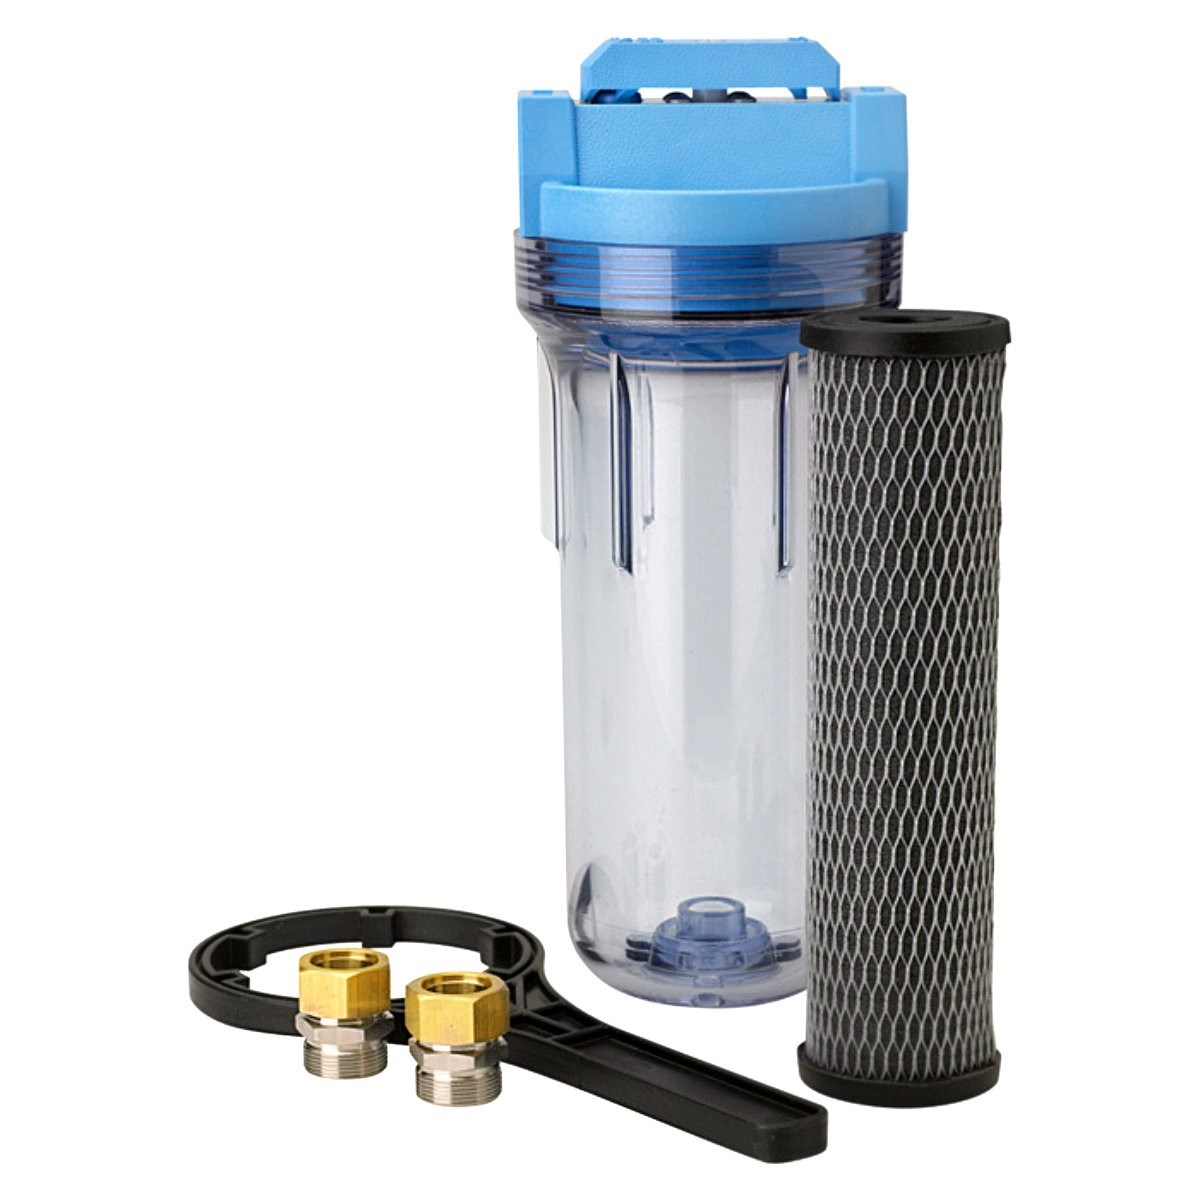 Buy The Omni Pentair U25 S 05 Whole House Filter System